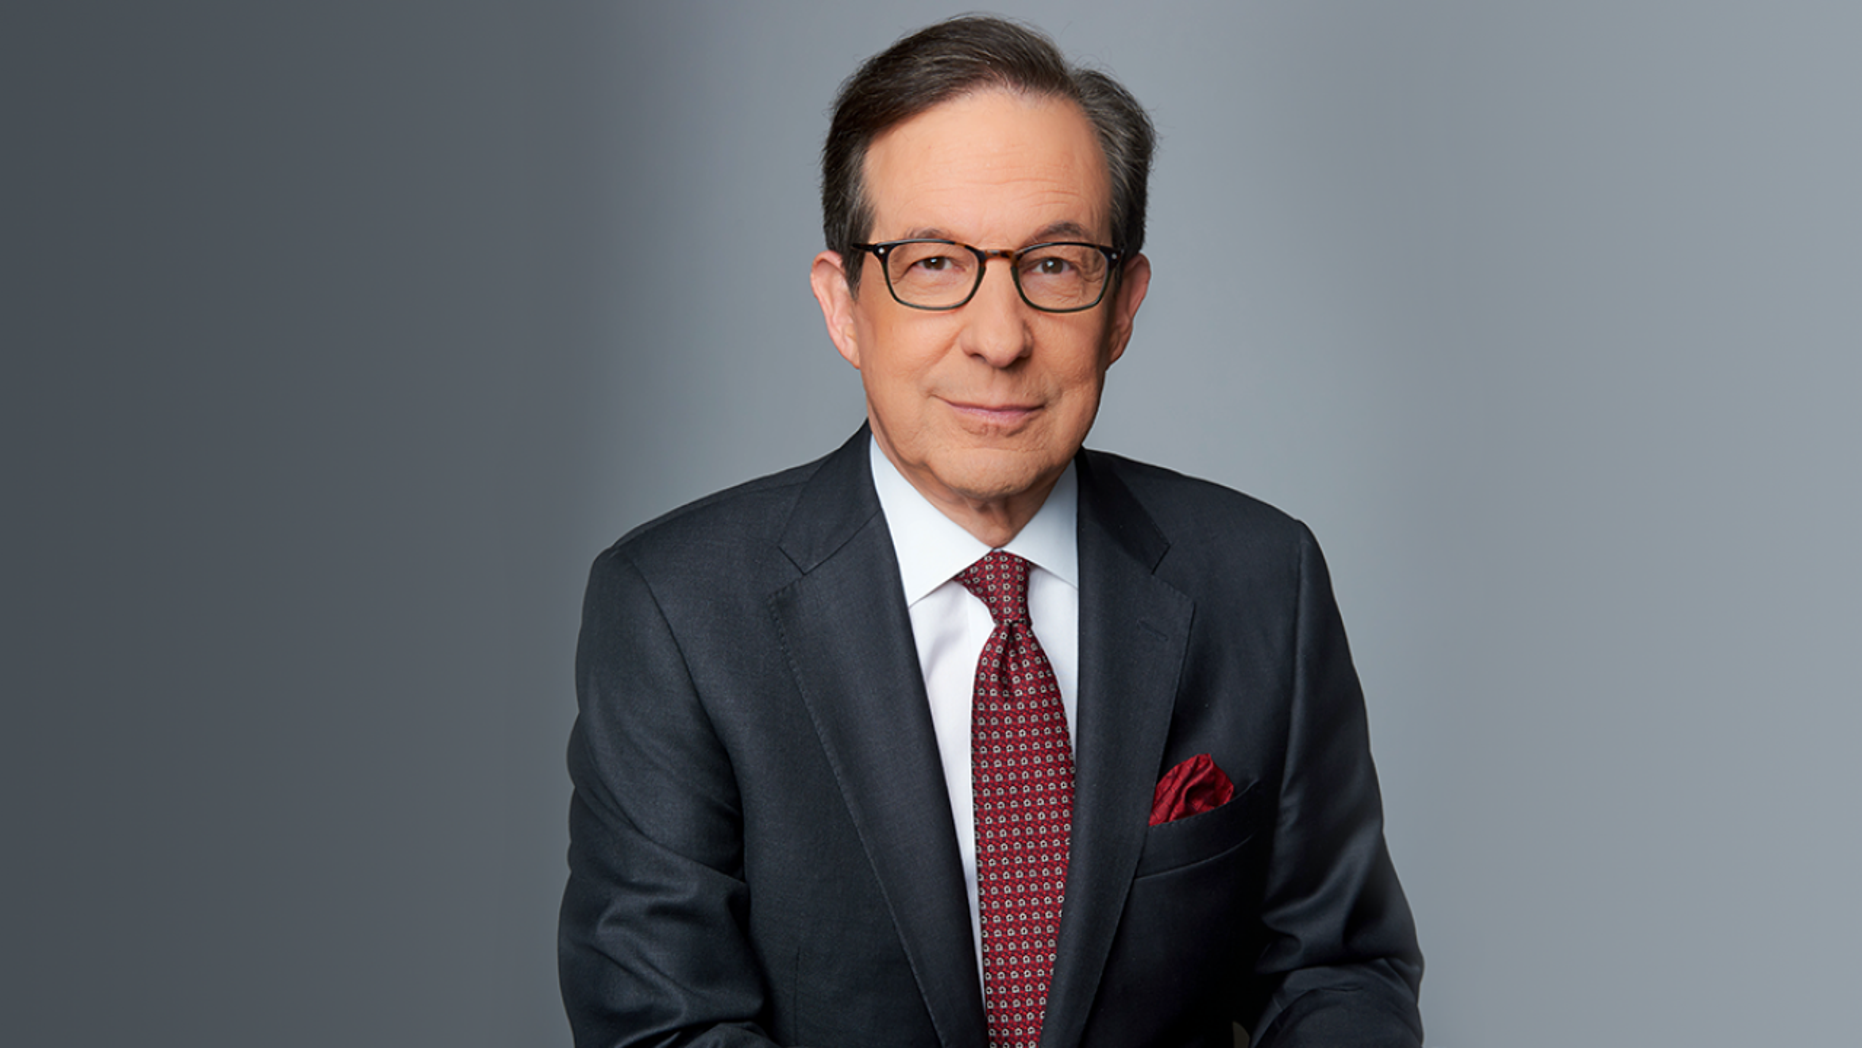 Fox News Channel's Chris Wallace said he was surprised by President Trump's  anti-media rhetoric